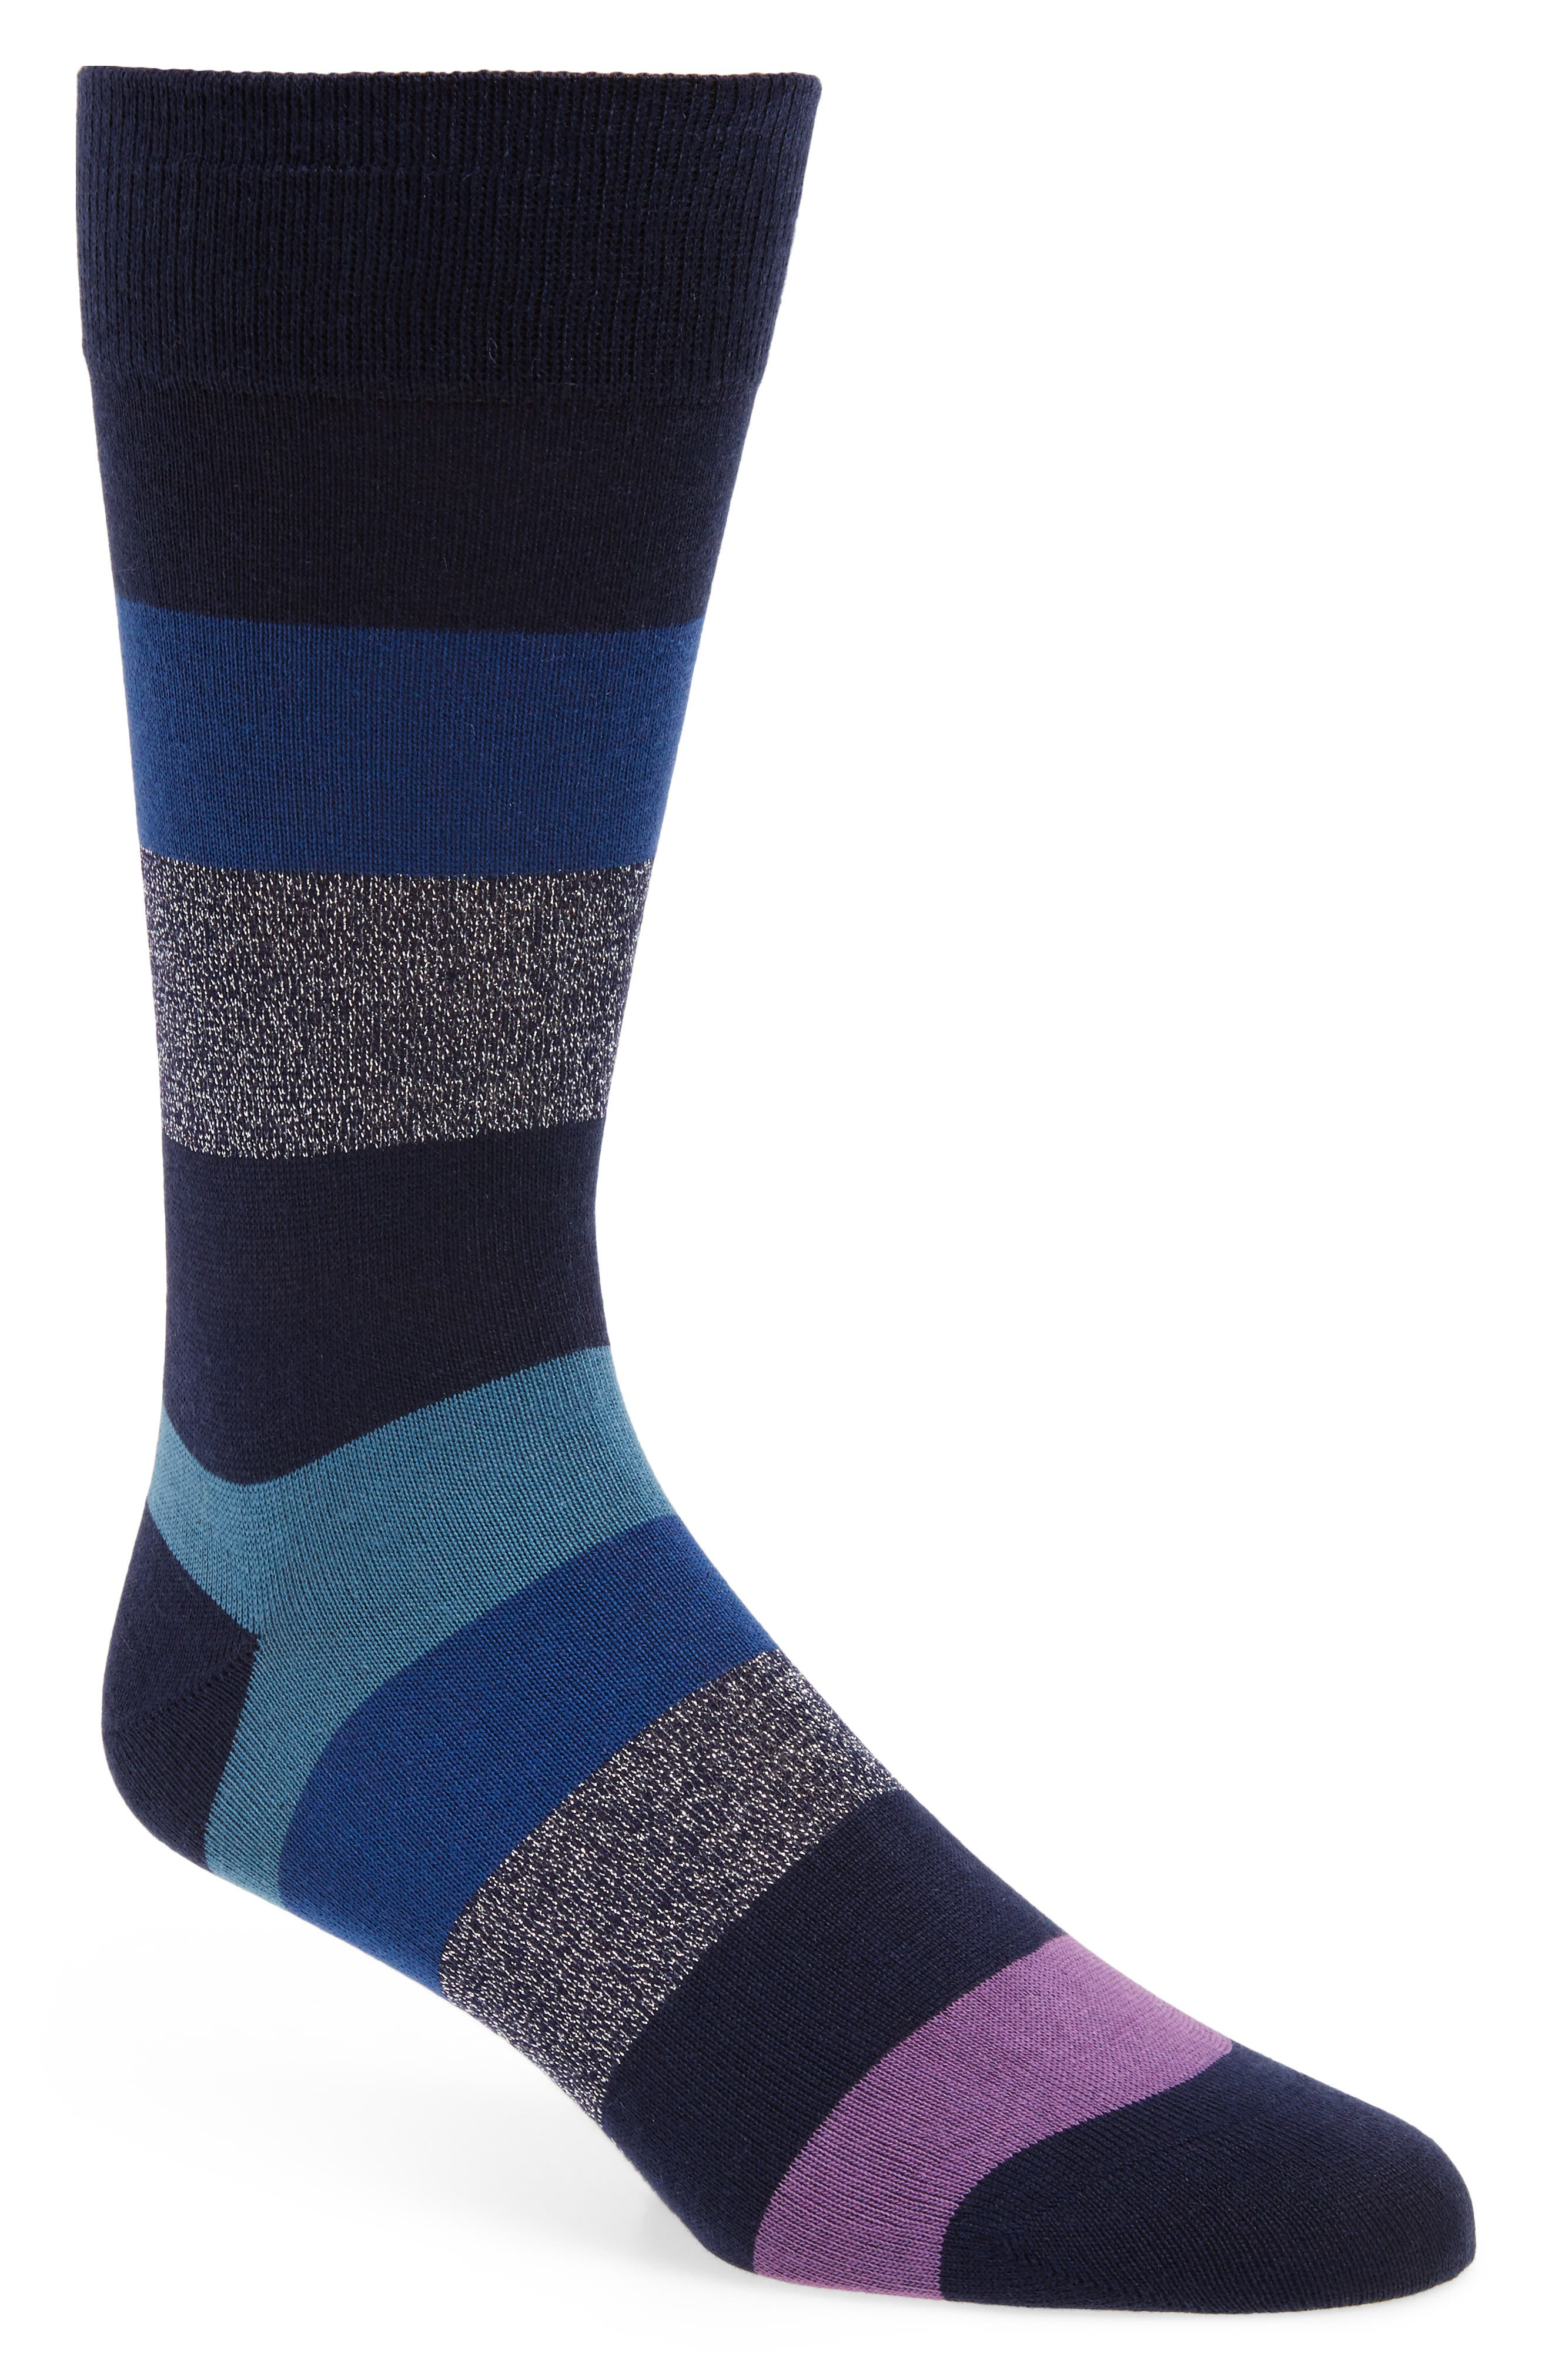 Starlight Socks,                         Main,                         color, Black